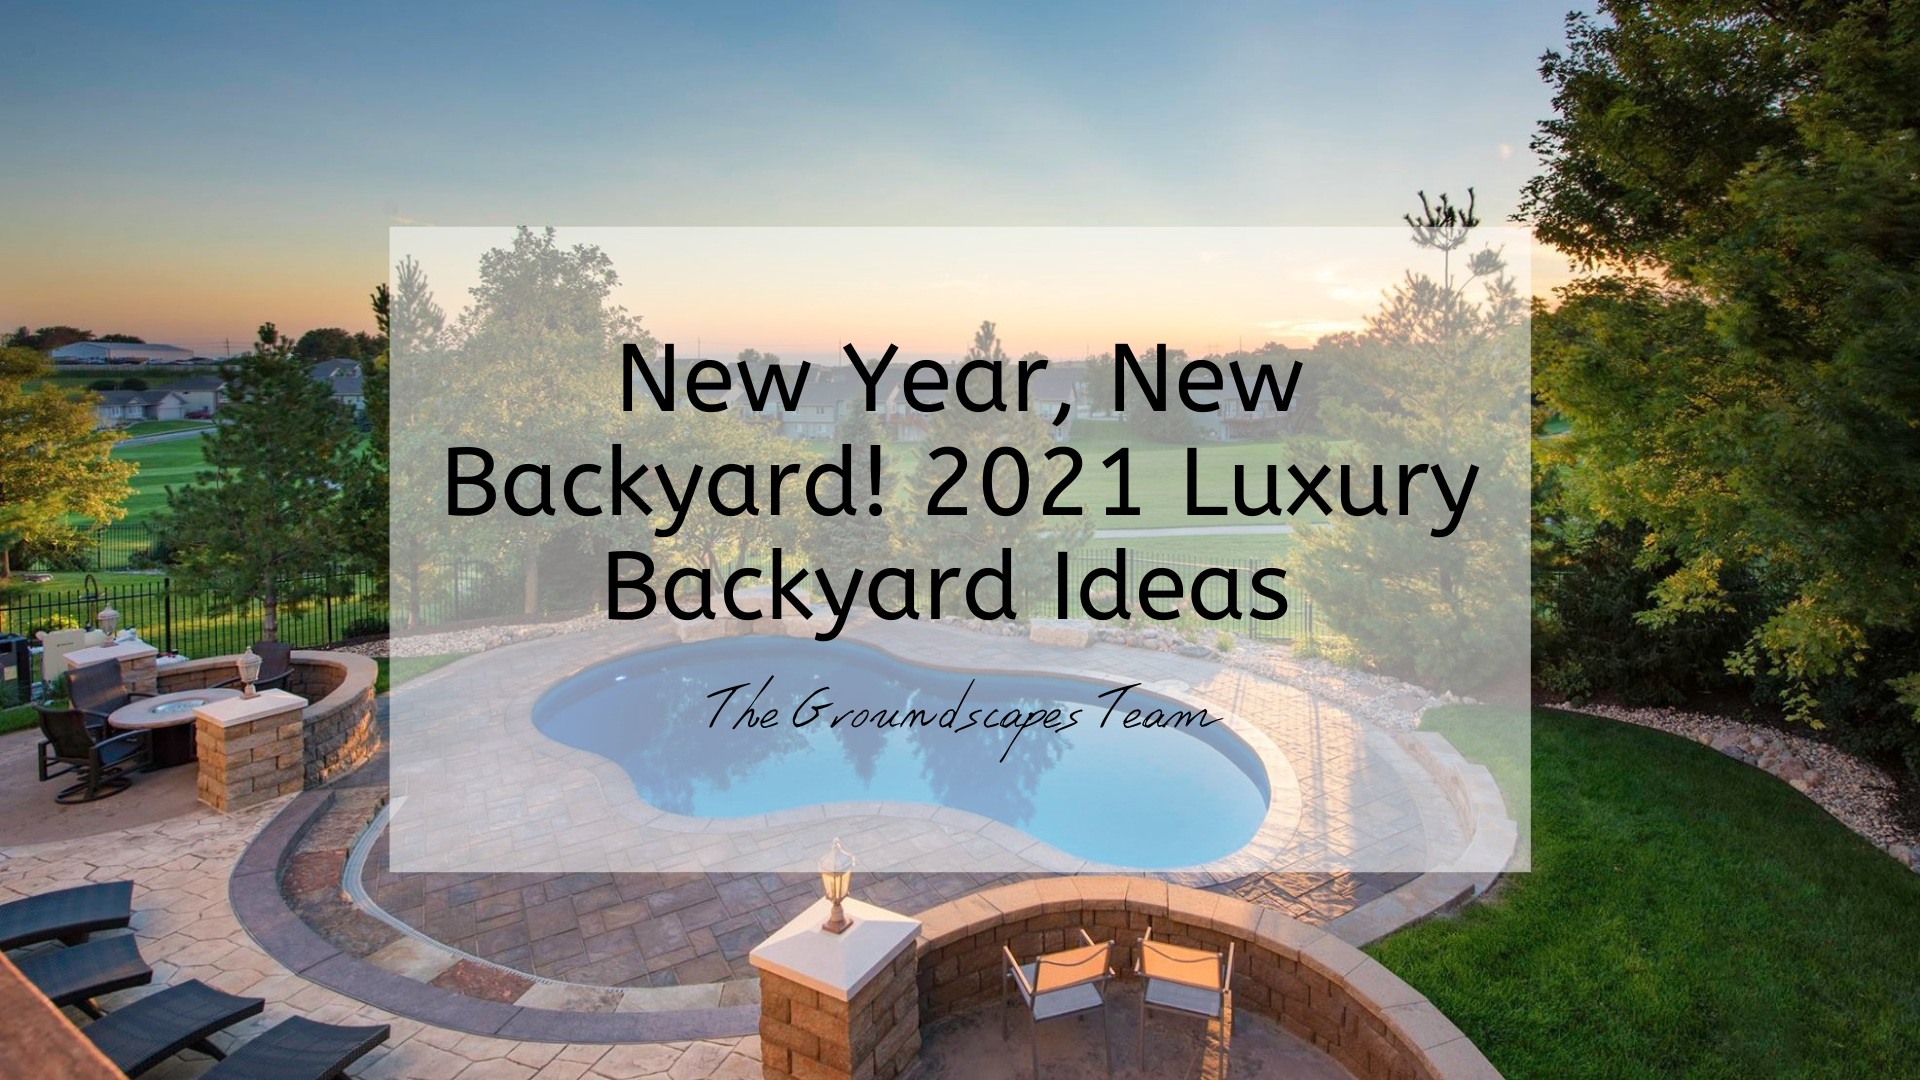 New Year, New Backyard! 2021 Luxury Backyard Ideas